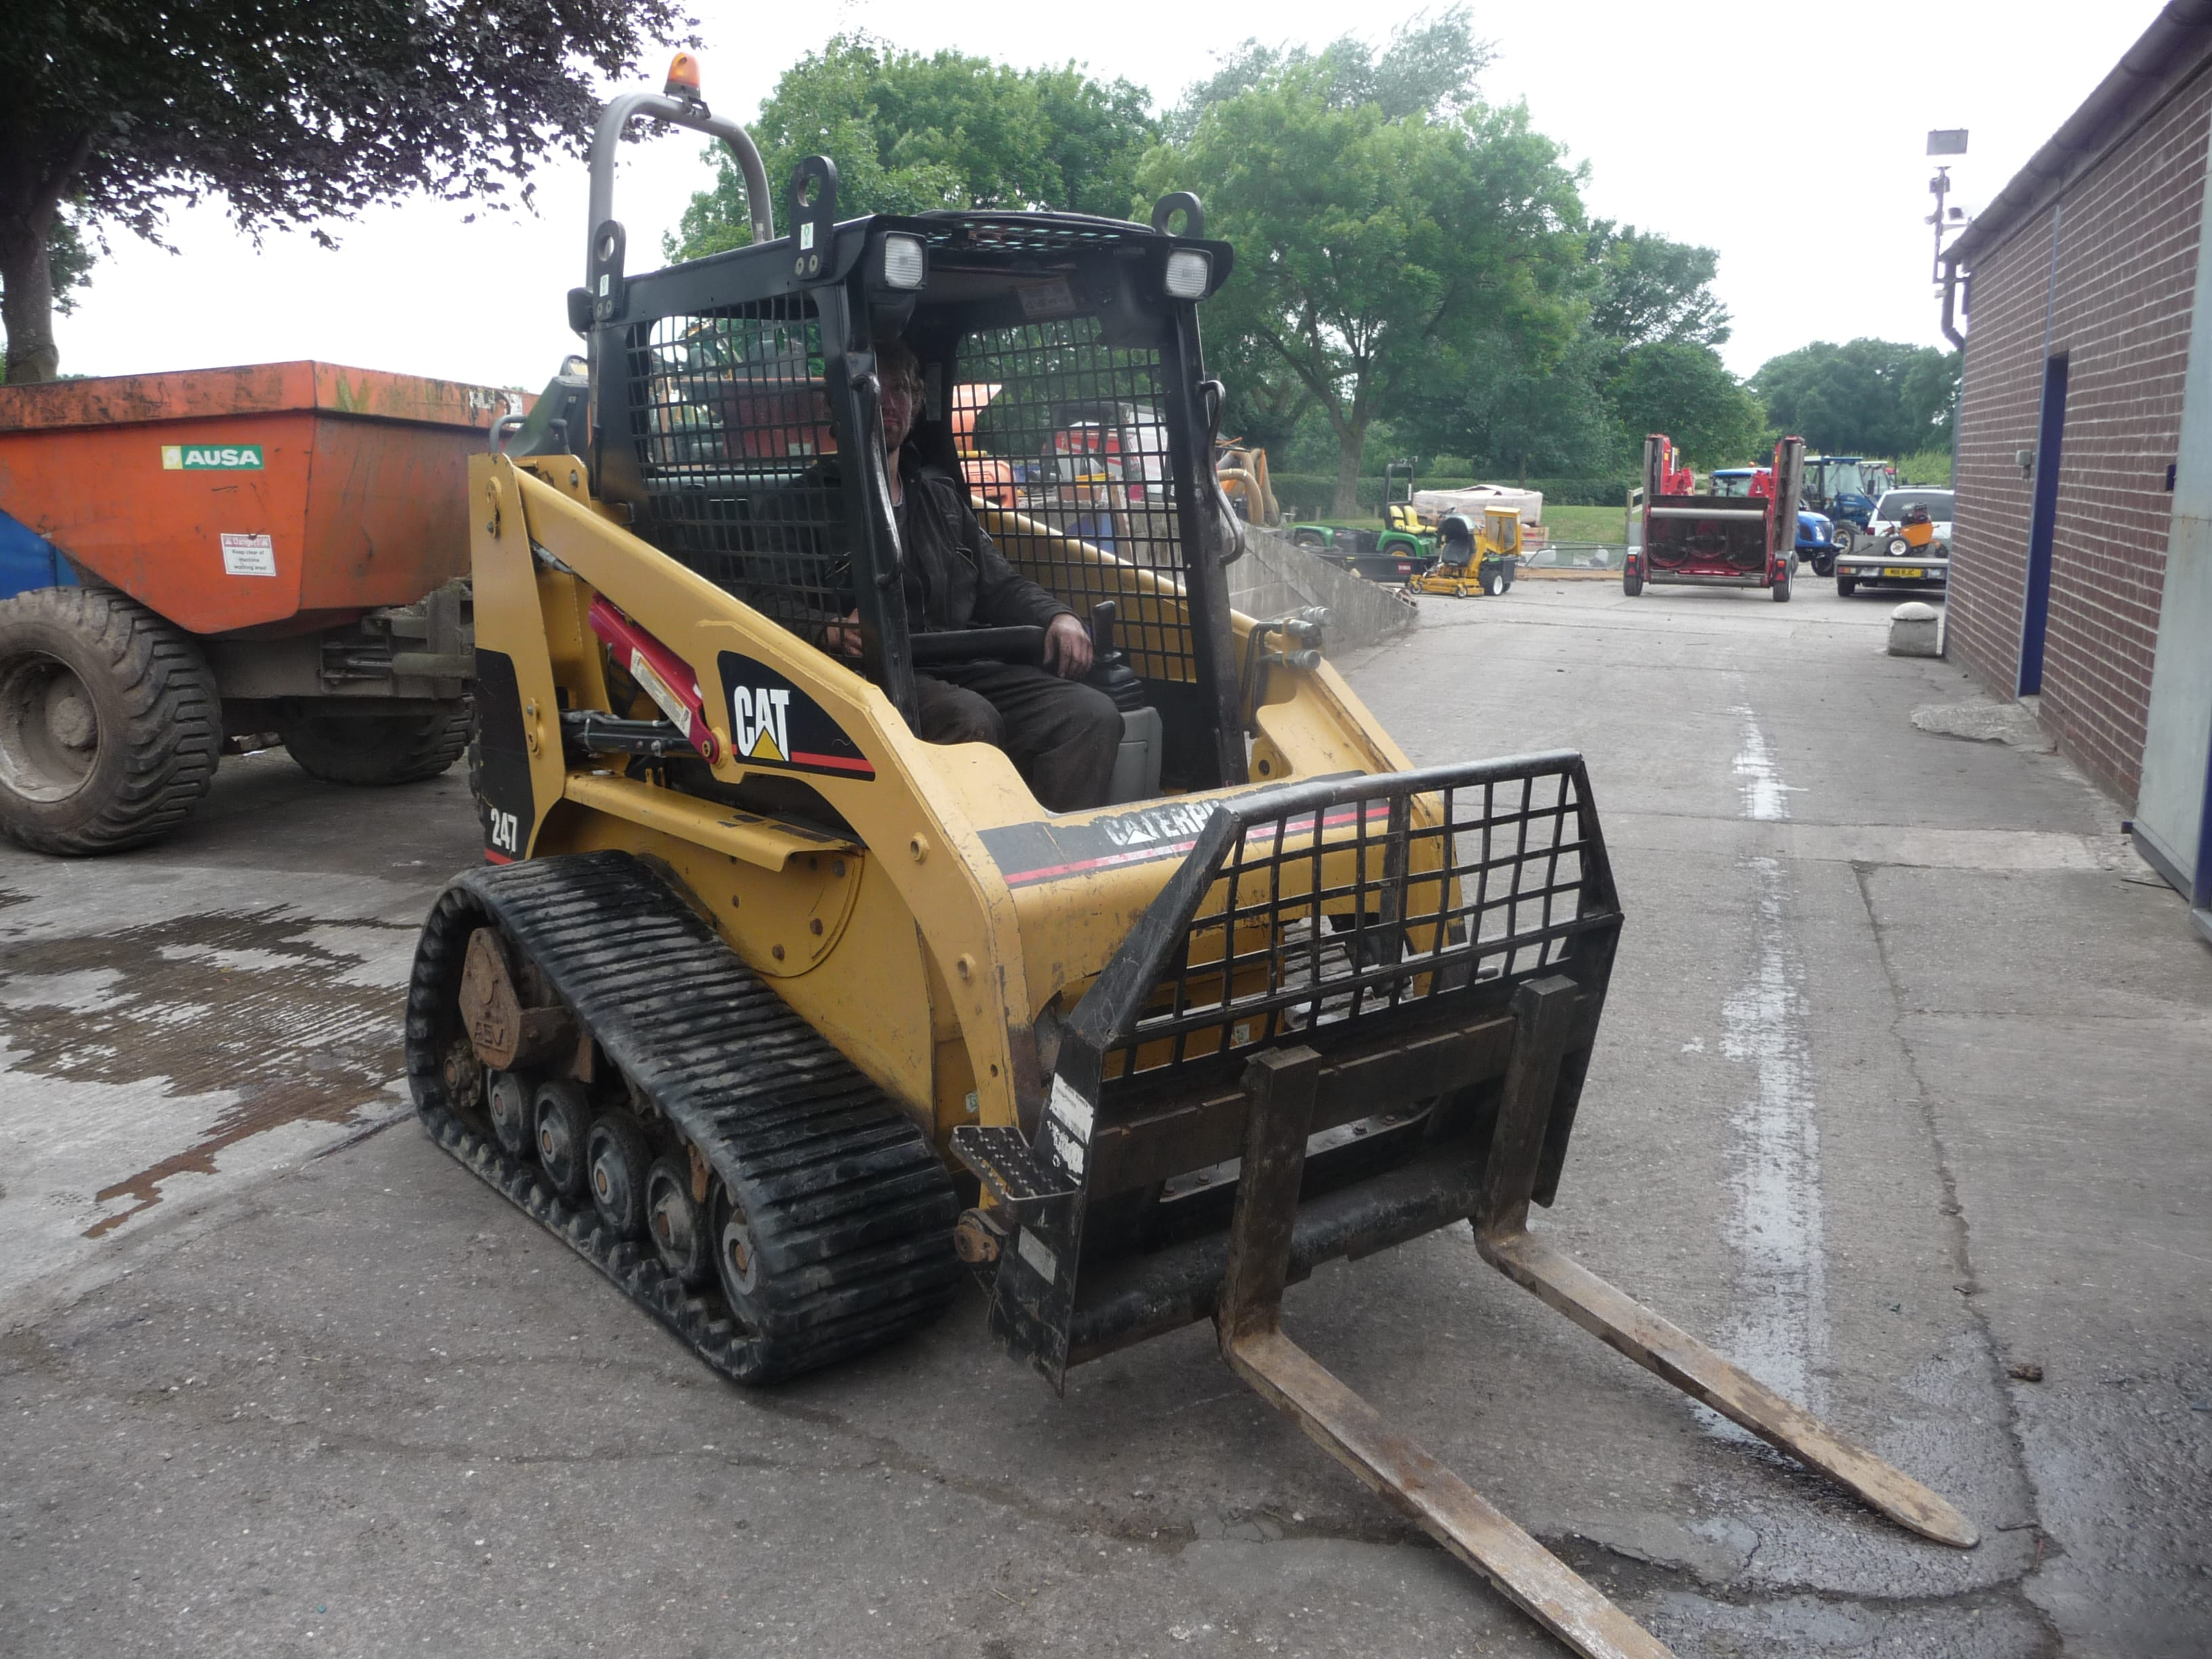 Cat 247 Skid Steer - U3945